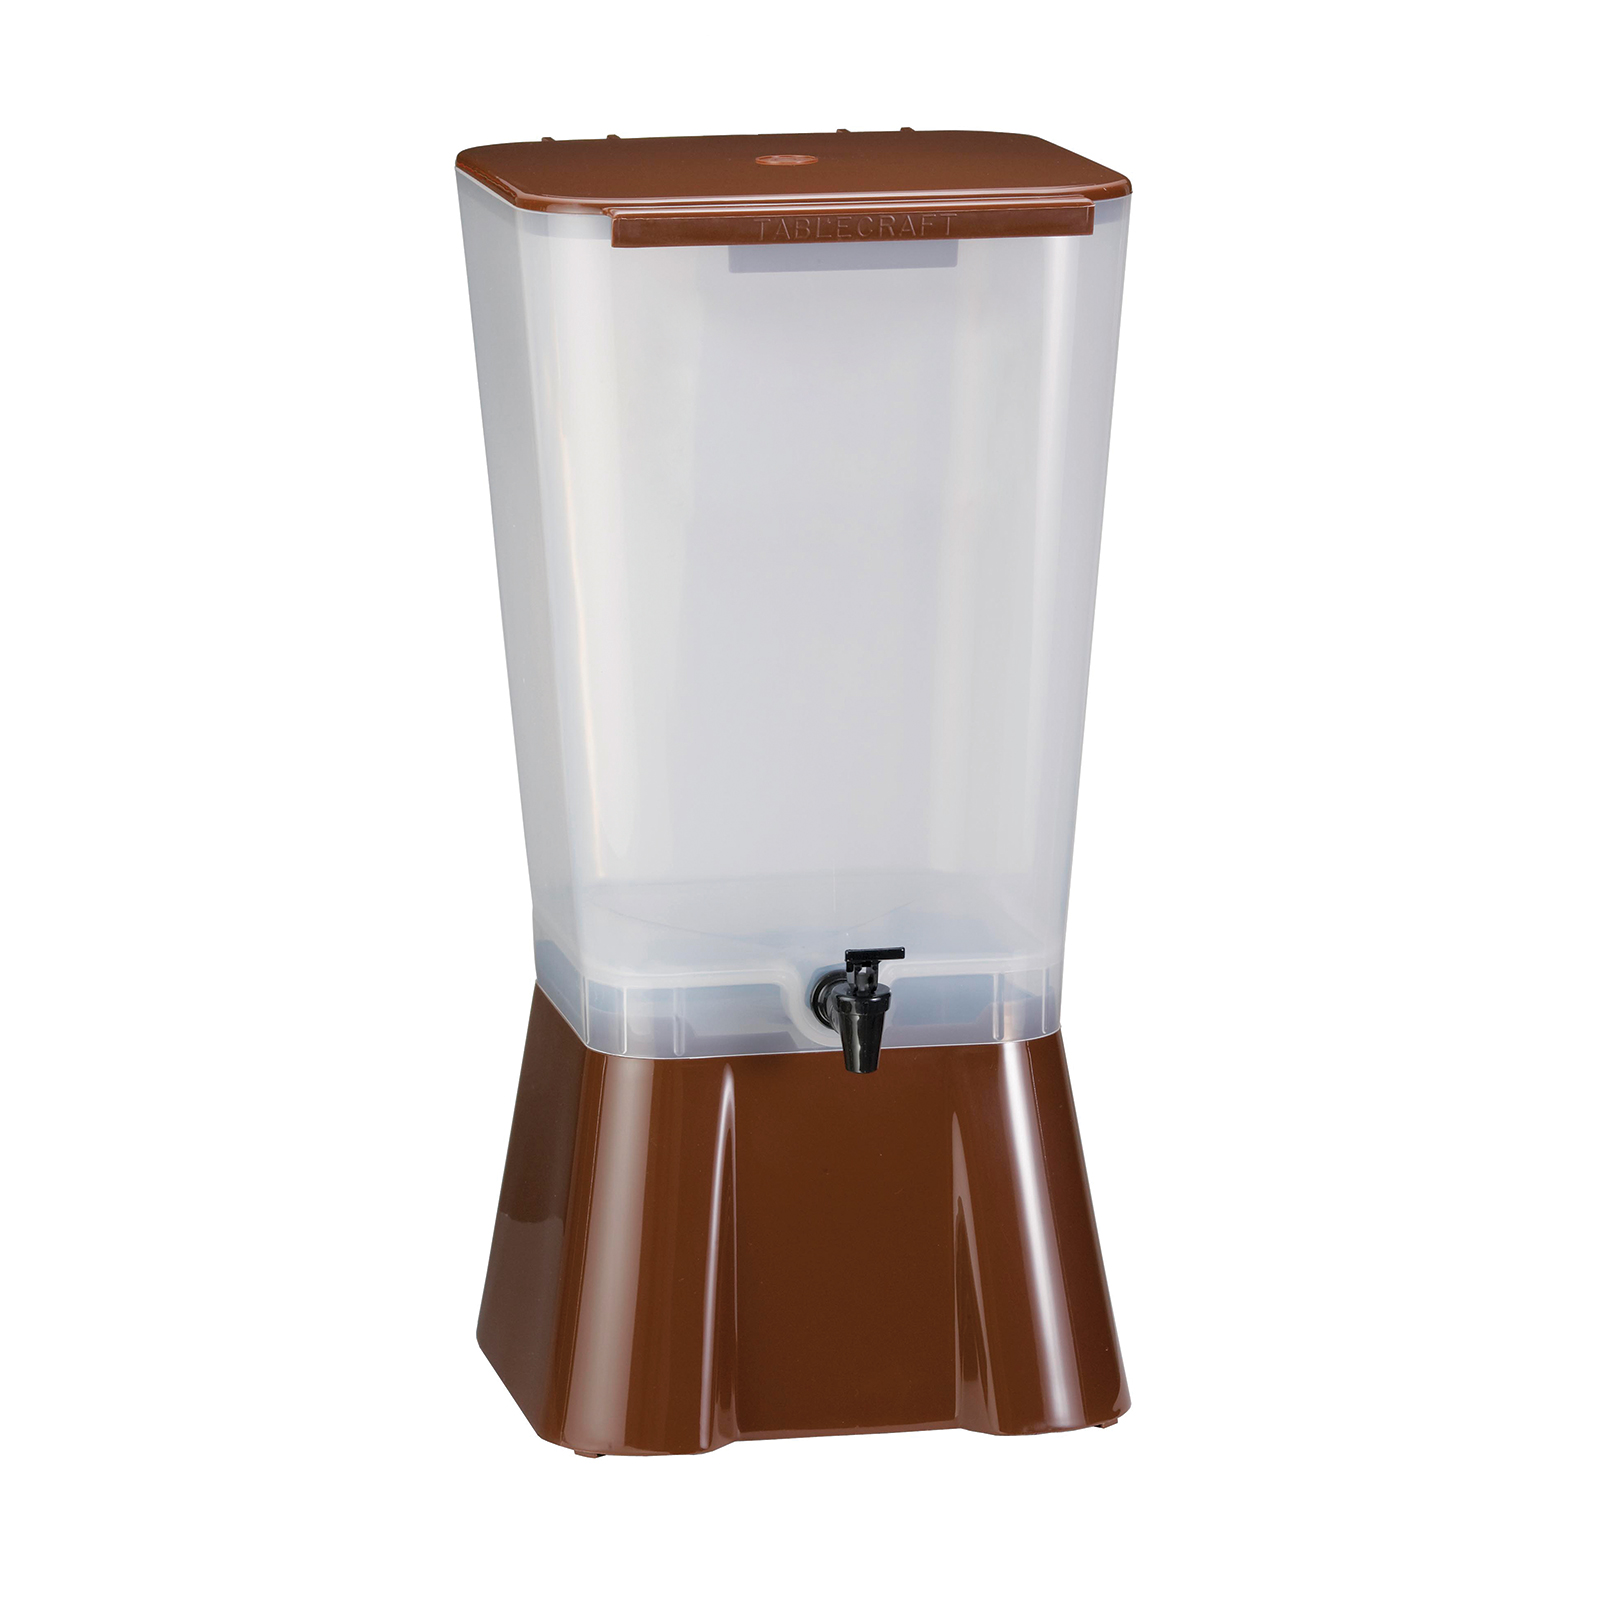 TableCraft Products 1054 beverage dispenser, non-insulated